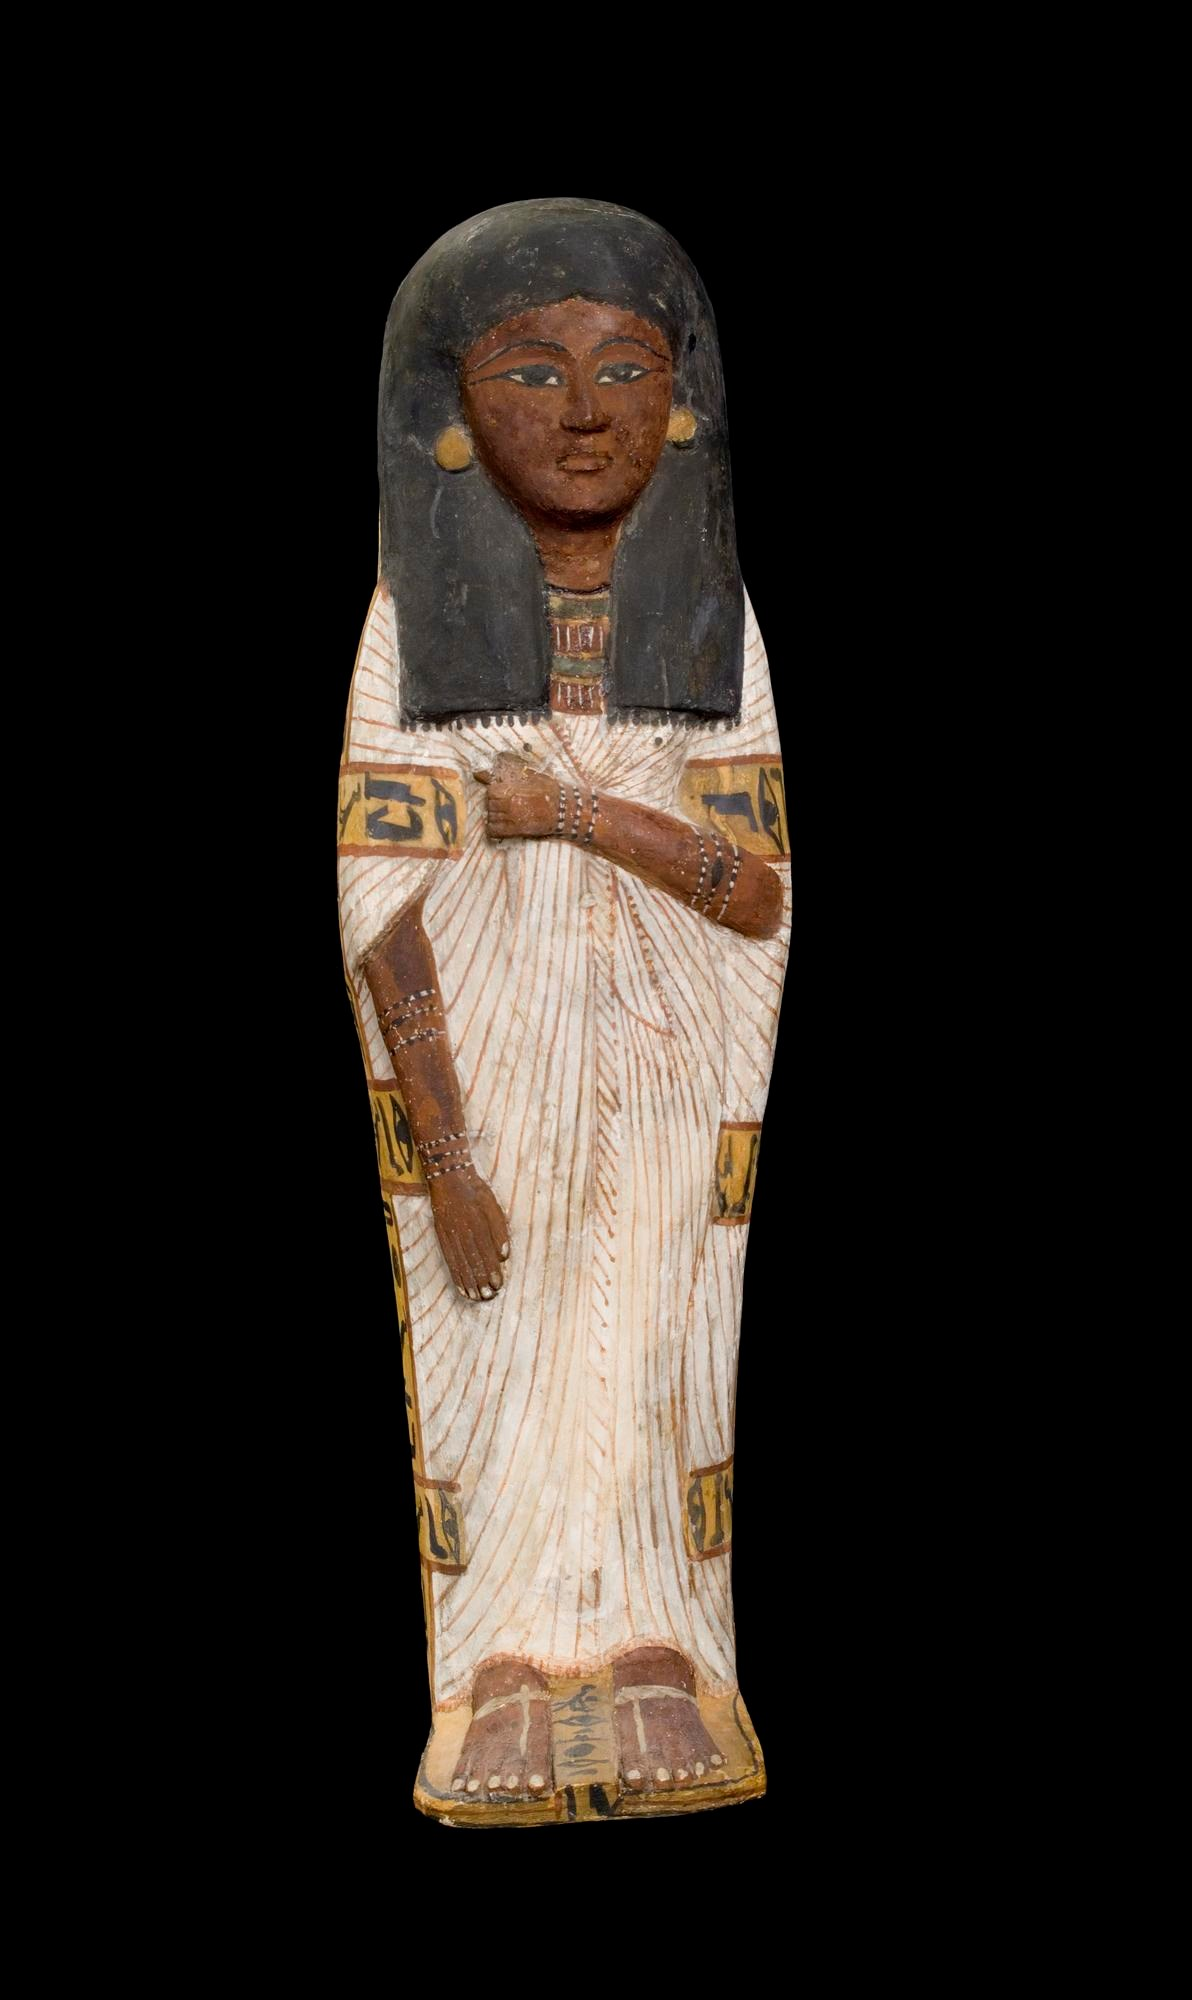 Lid for an anthropoid wooden coffin, plastered and painted, of a child, Tairtsekher, daughter of Irtnefret: Ancient Egyptian, possibly from Deir el-Medina, New Kingdom, early 19th Dynasty, c.1292-1200 BC.